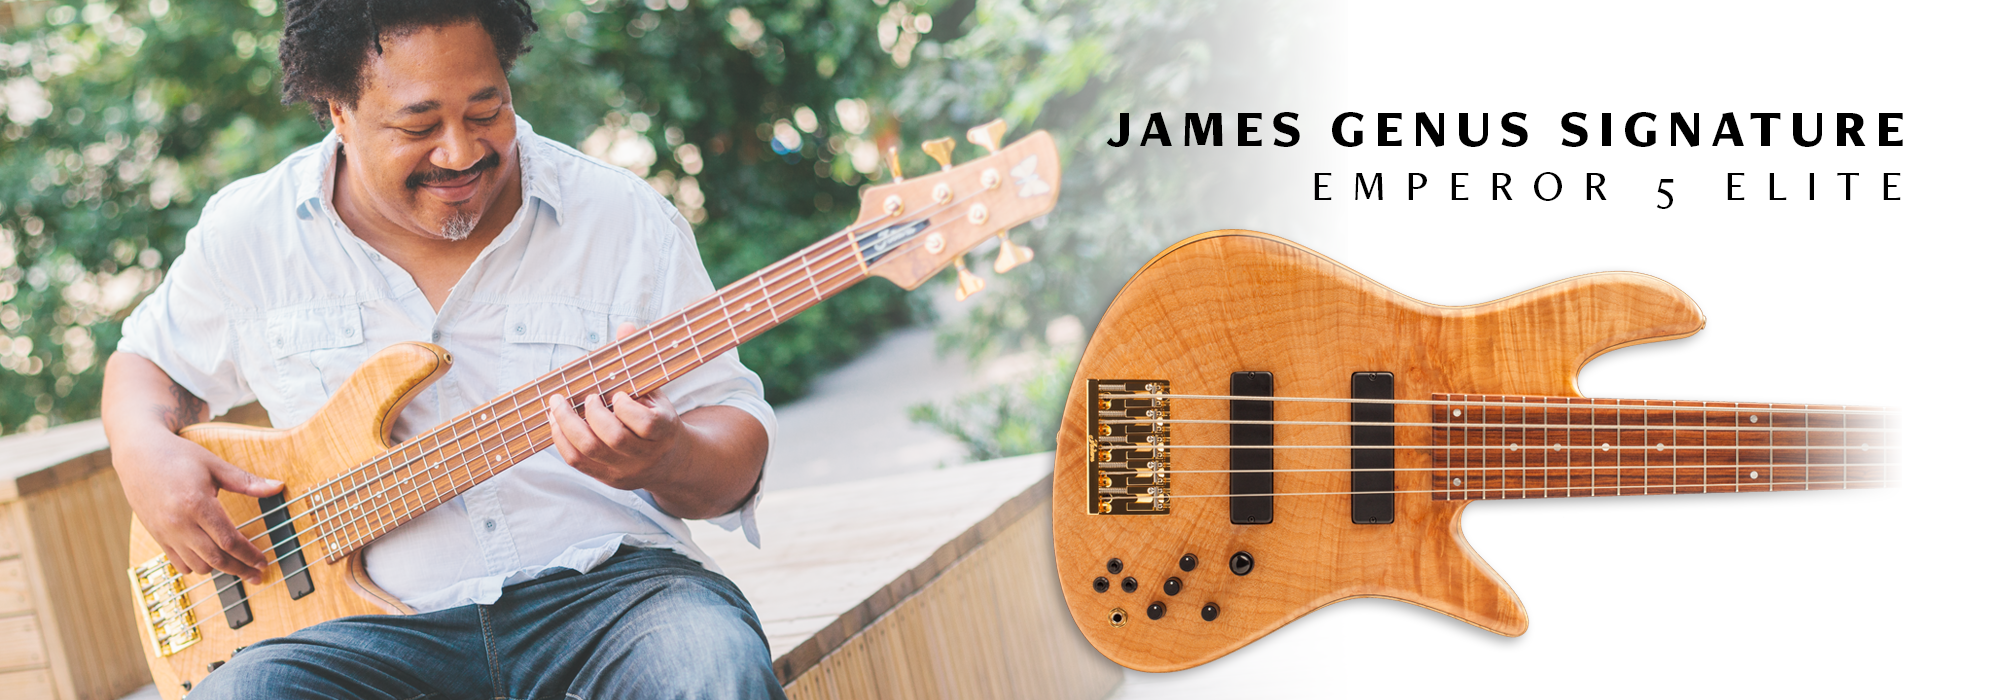 James Genus Signature Emperor 5 Elite Bass Guitar